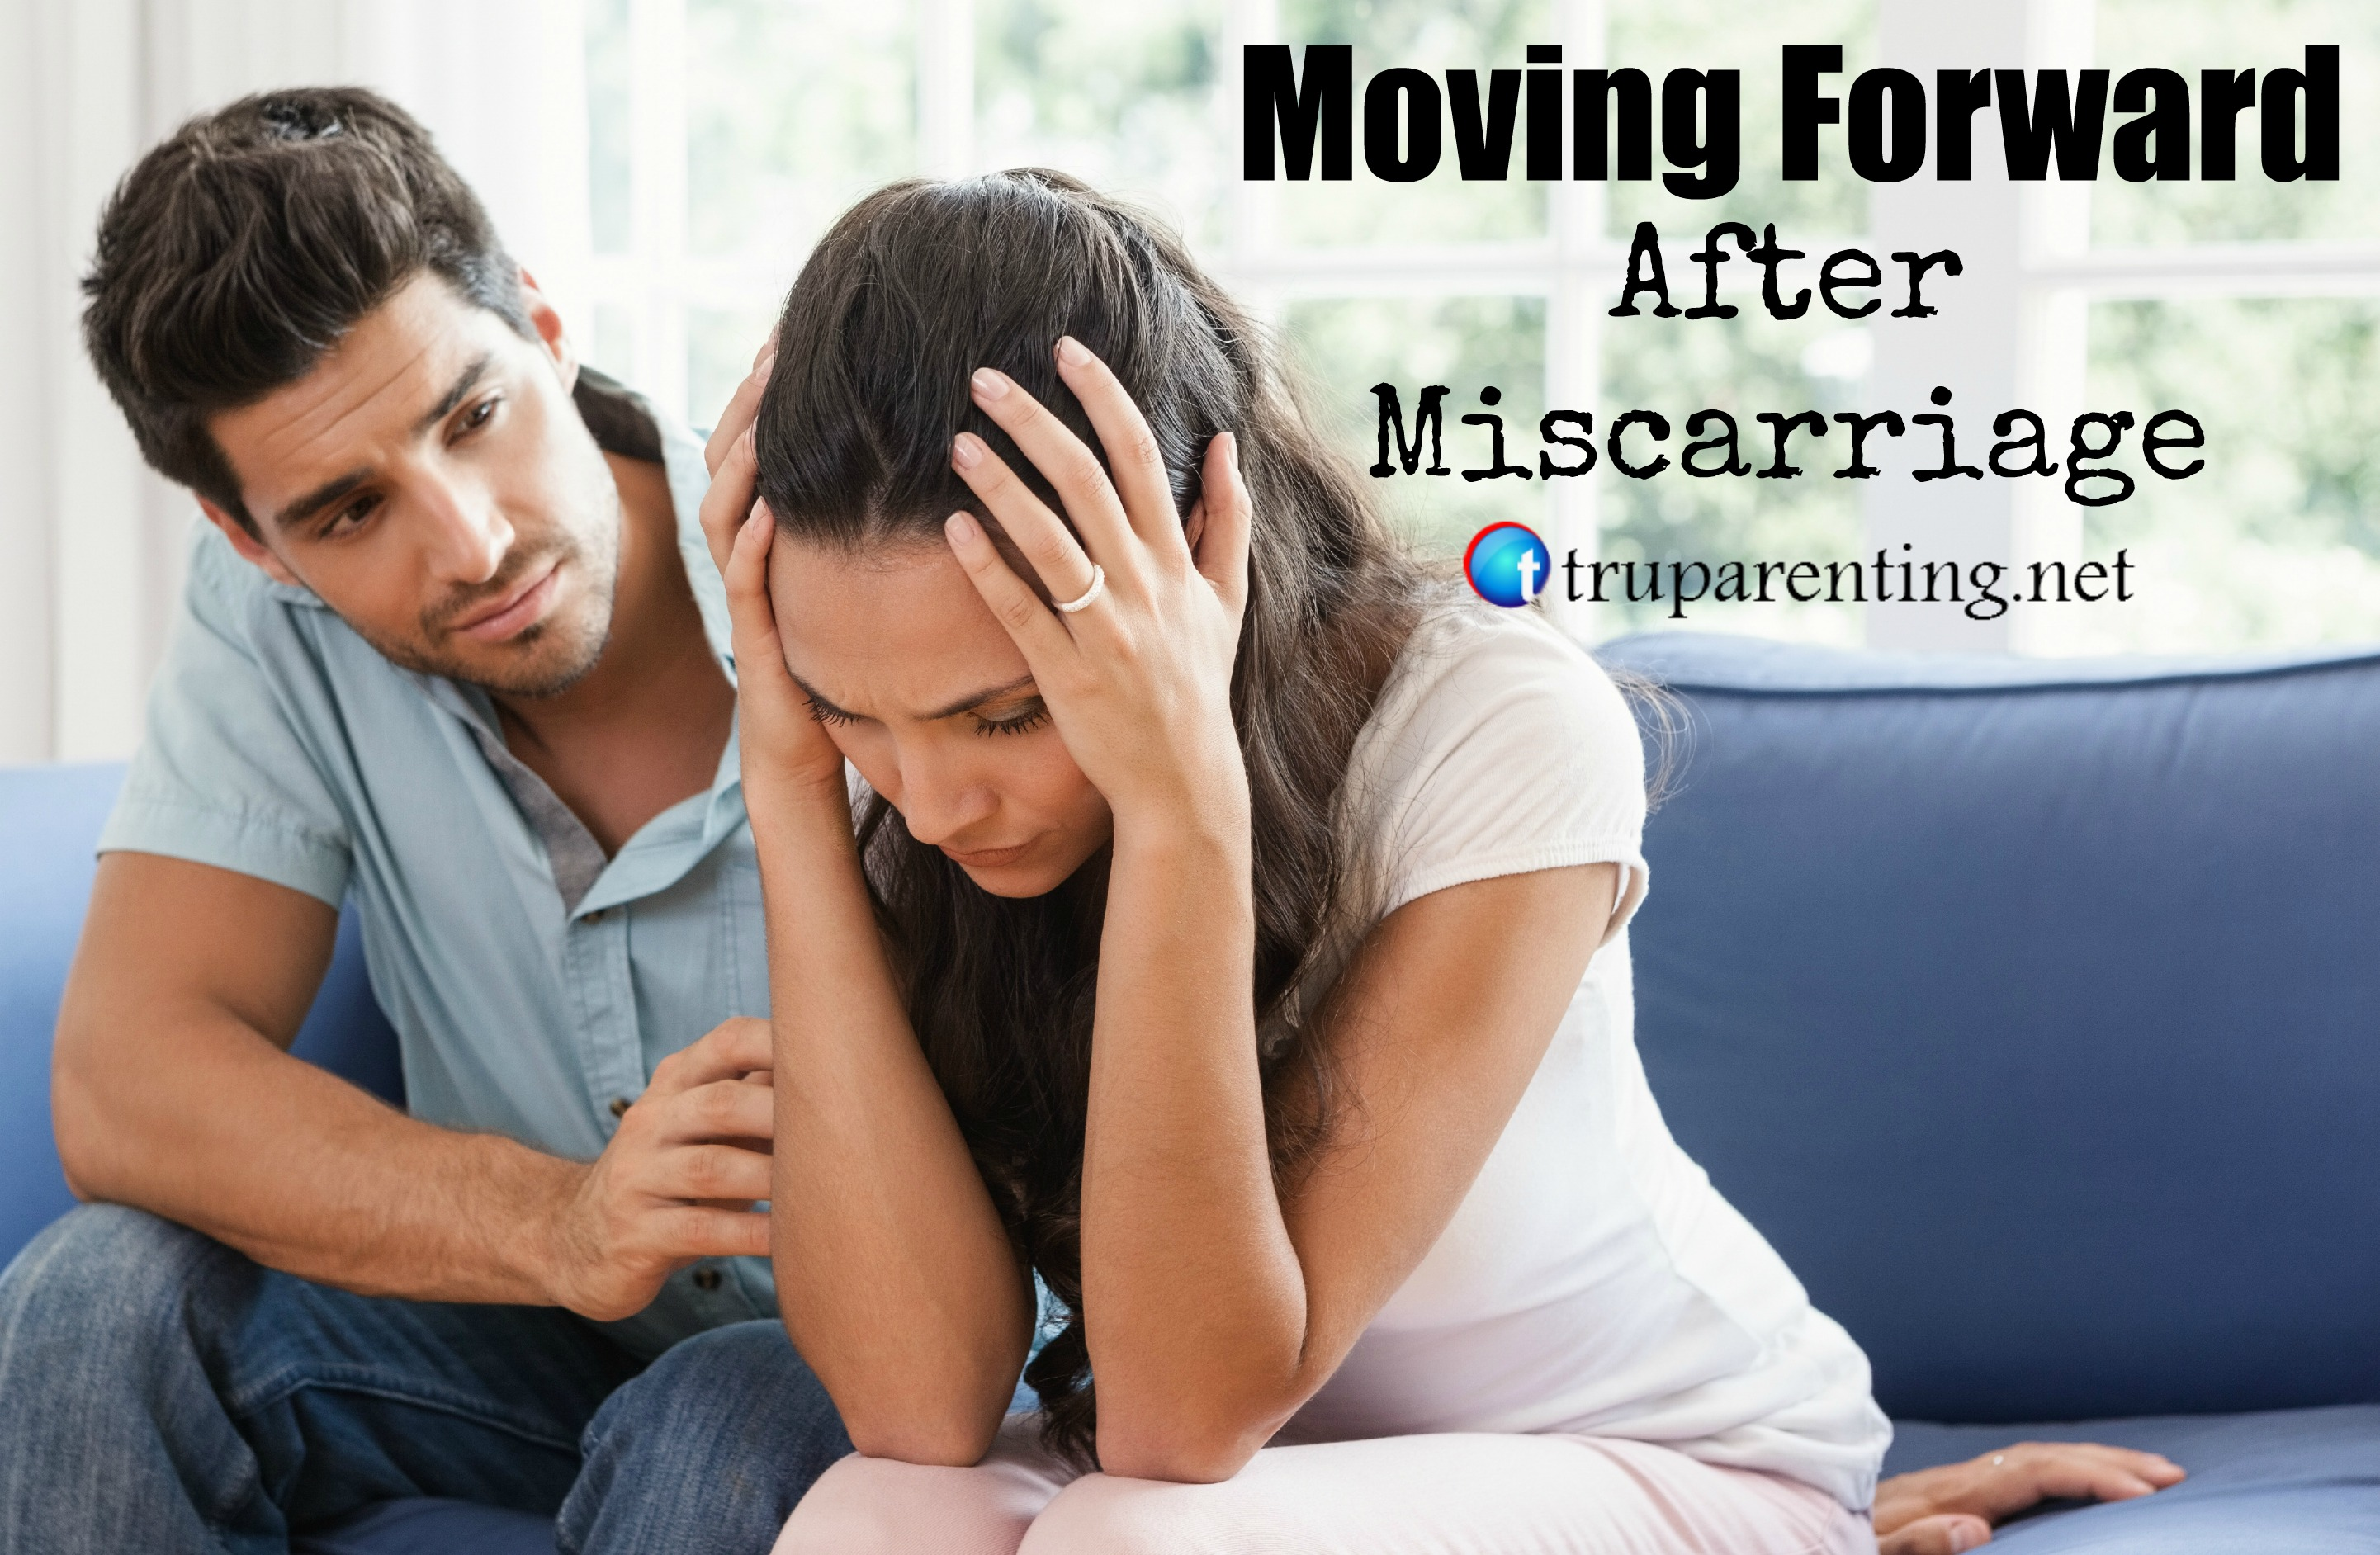 moving forward after misscarriage